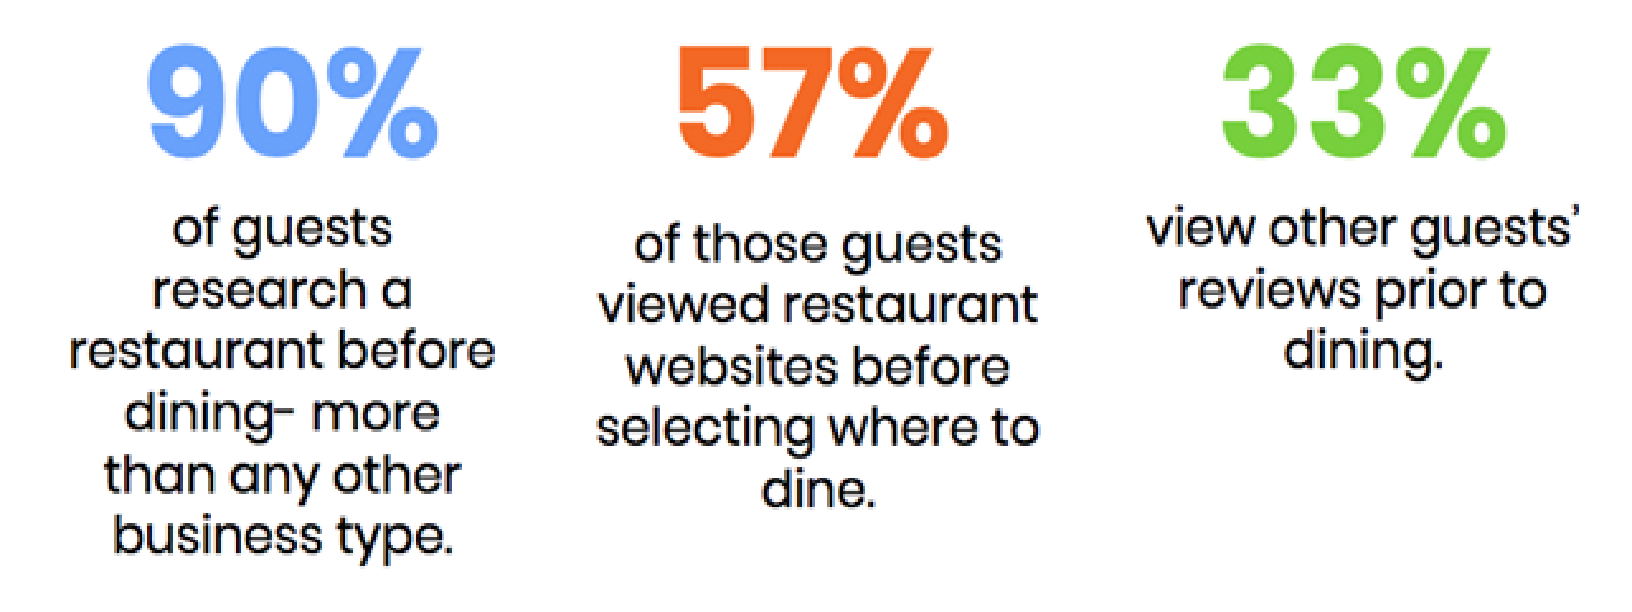 behavior Digital Marketing Strategies for Restaurant